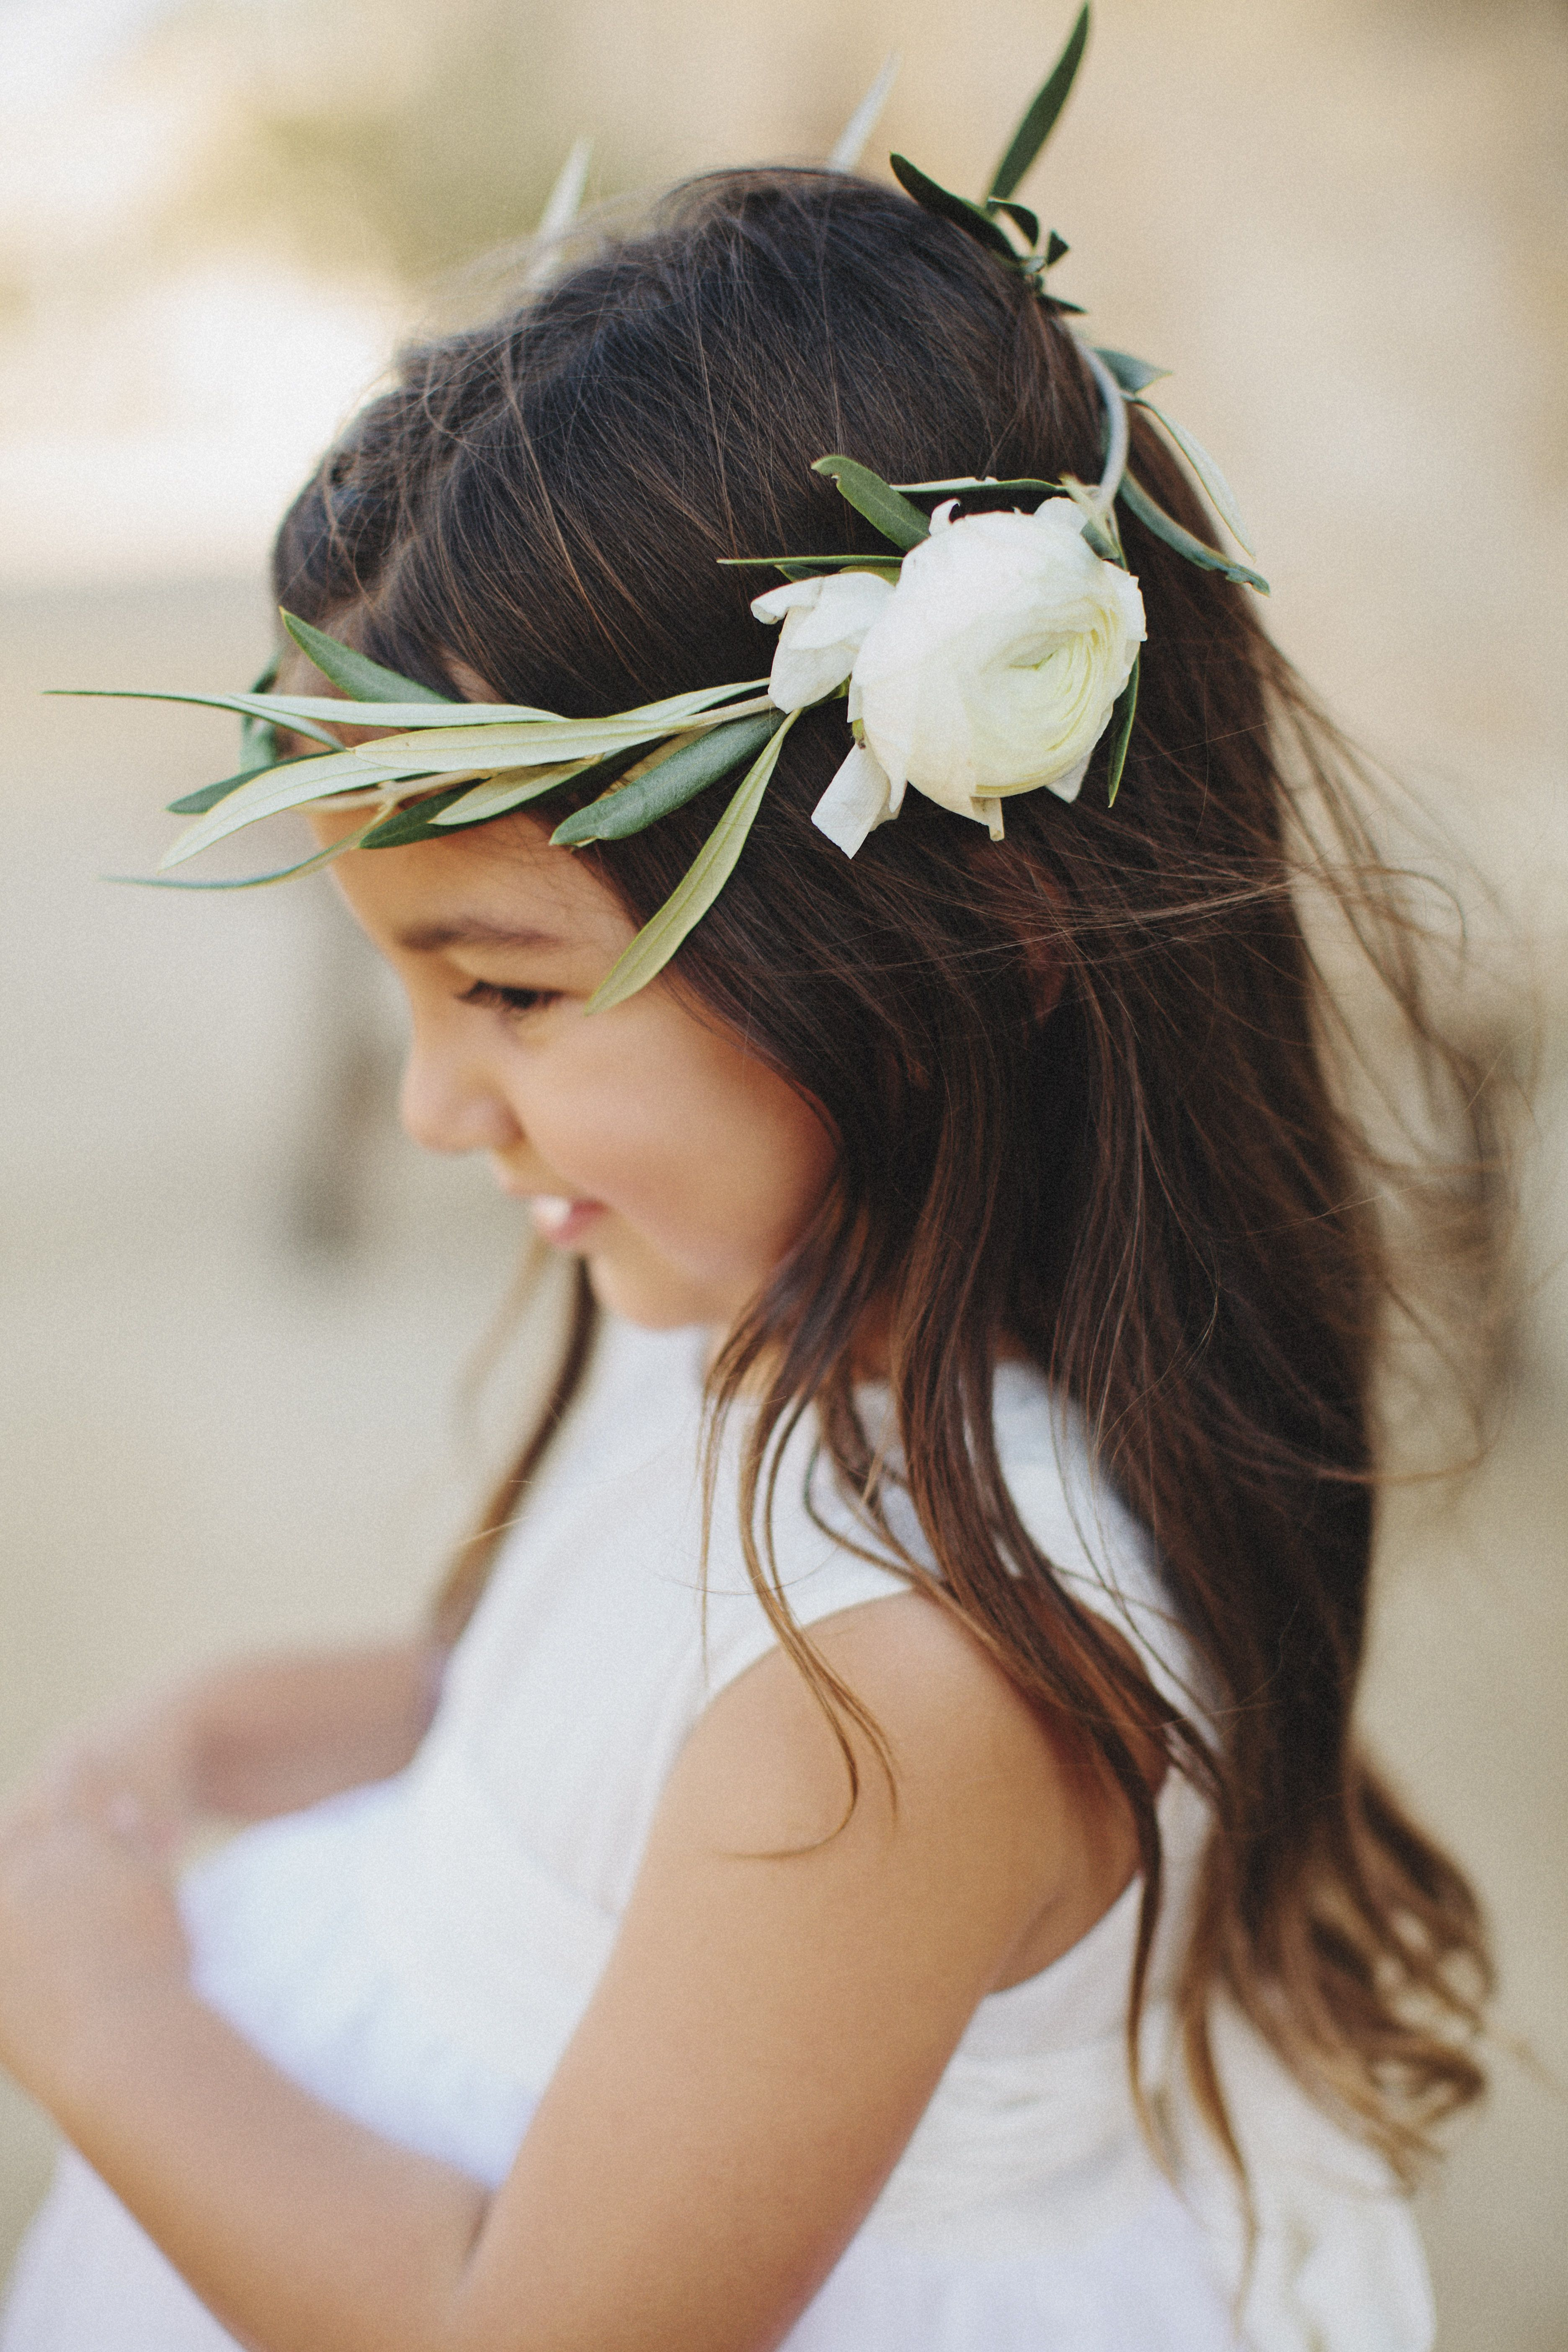 Olive branch flower crown for this beautiful flower girl sunstone olive branch flower crown for this beautiful flower girl sunstone villa wedding i very much enjoyed working on image by matthew morgan izmirmasajfo